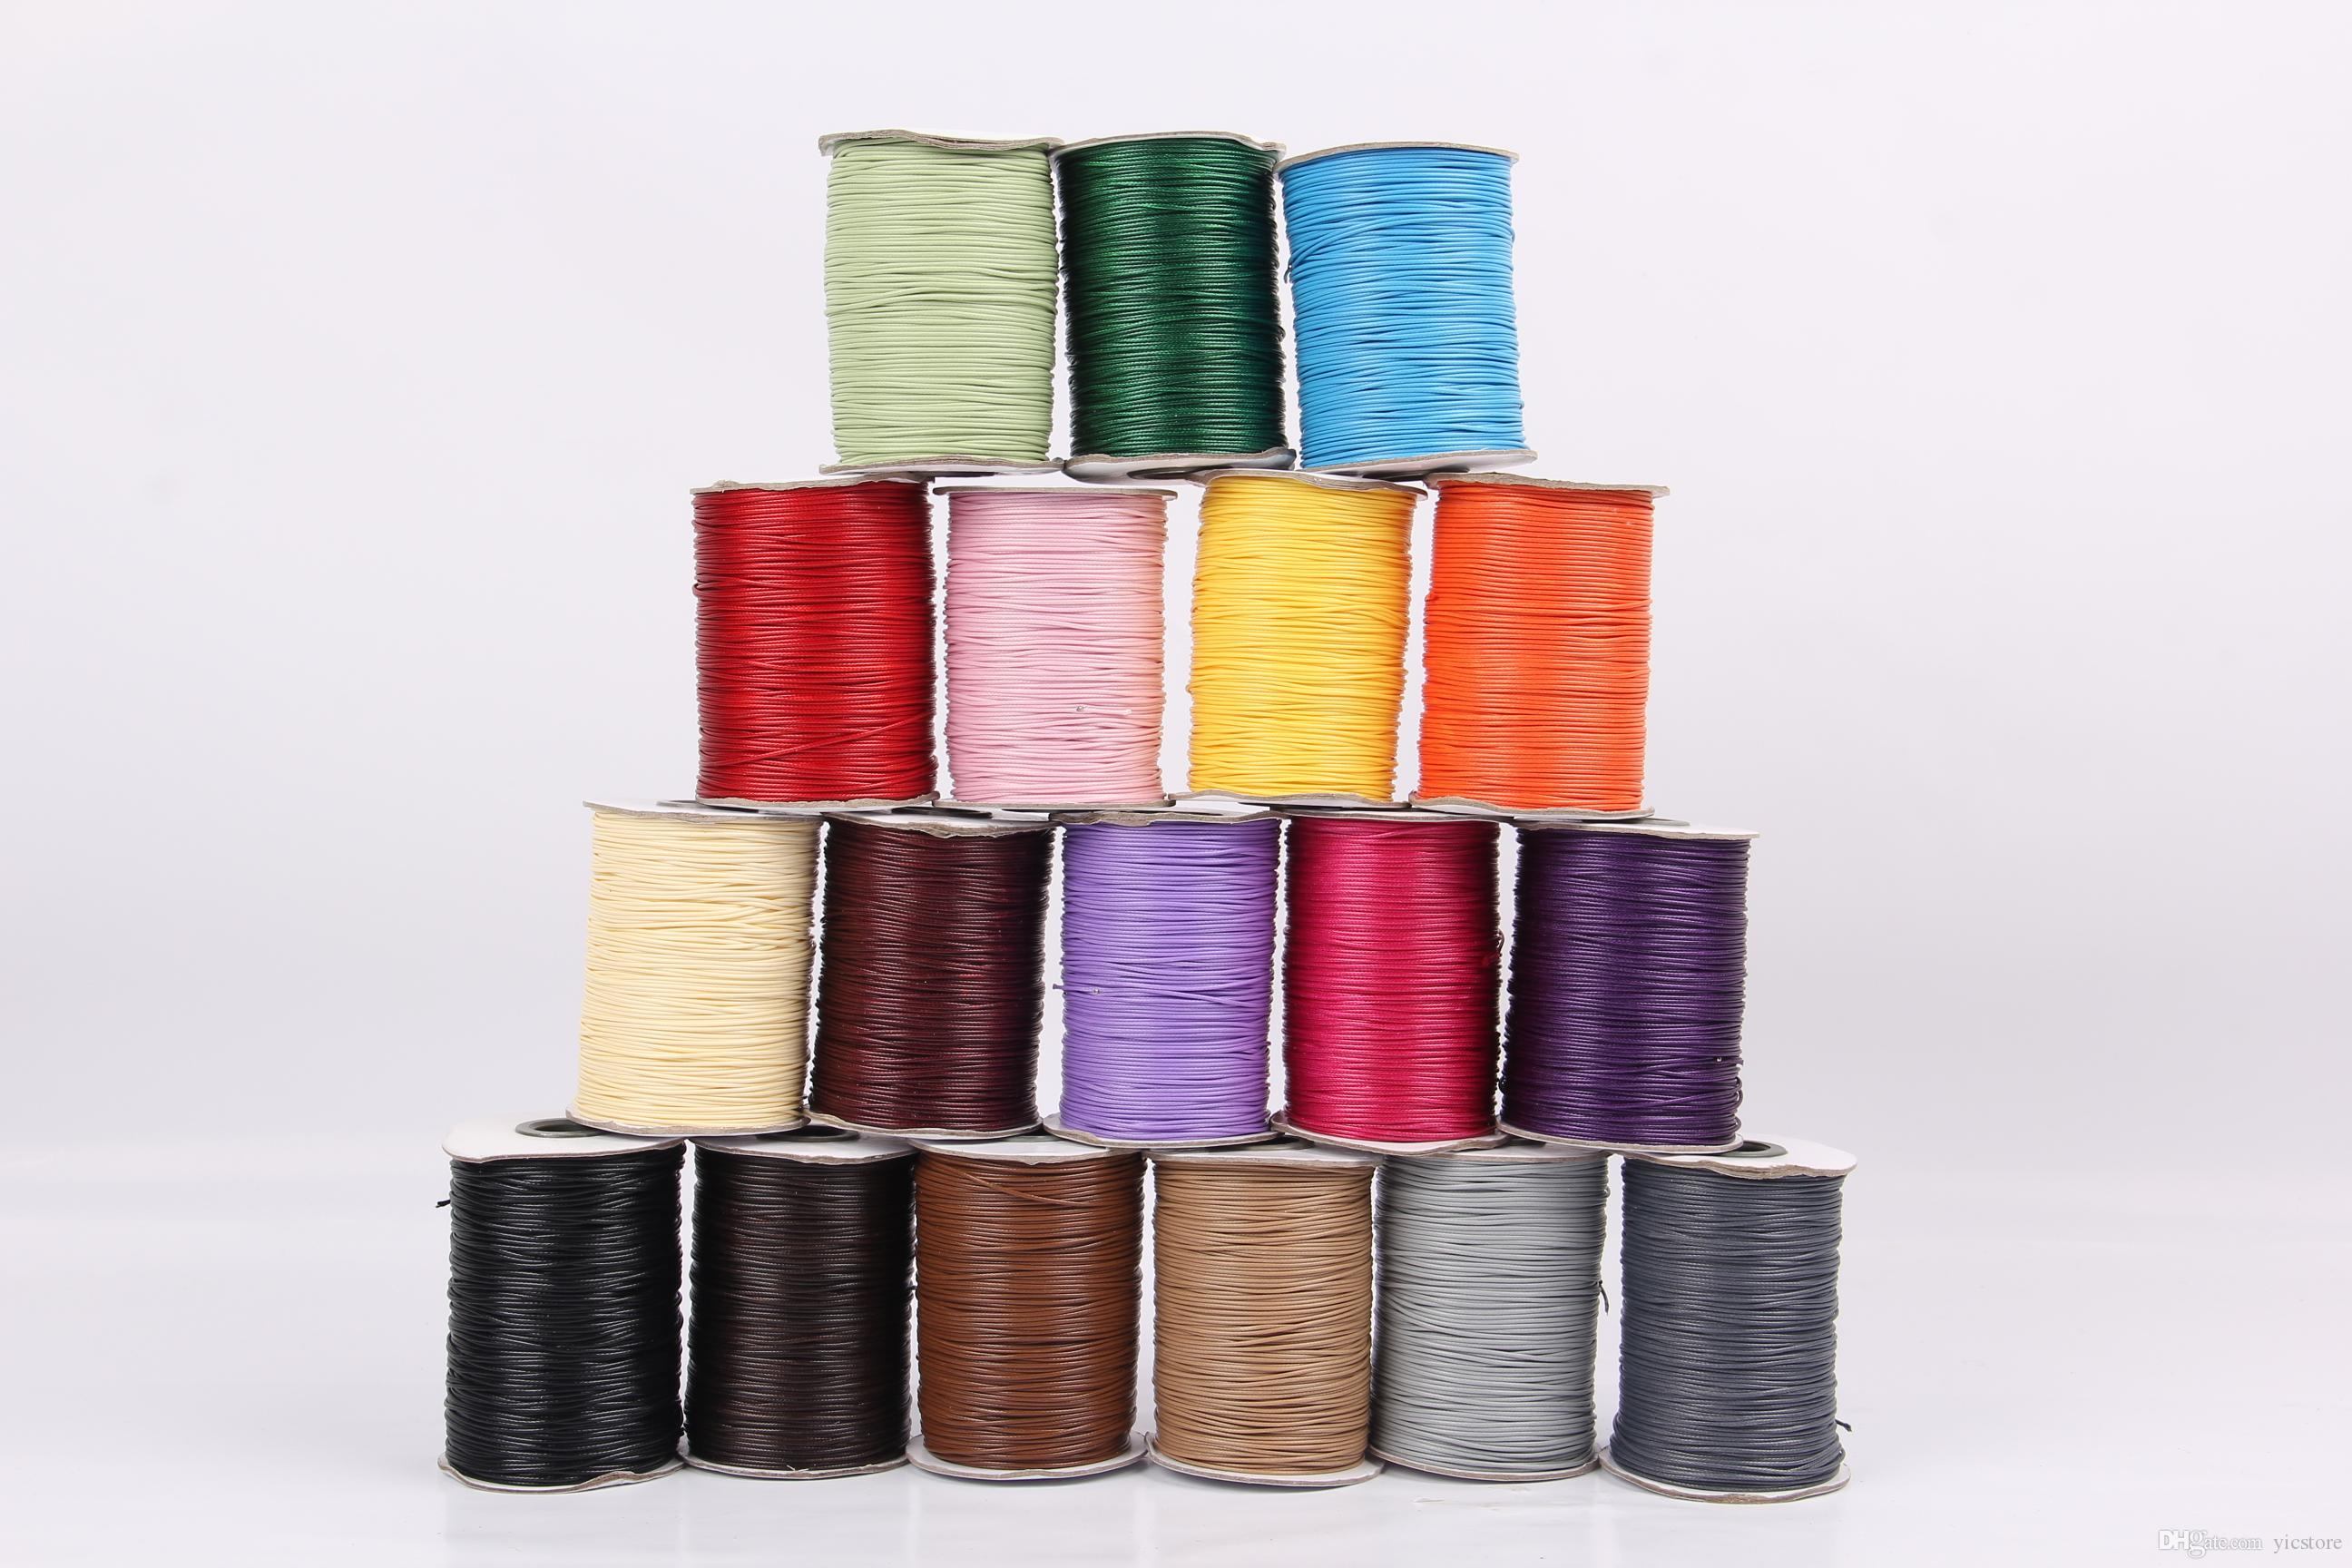 1mm 200Yards high quality Waxed Cotton Cords For Wax Jewelry Making DIY Bead String Bracelet Sewing Leather Necklace